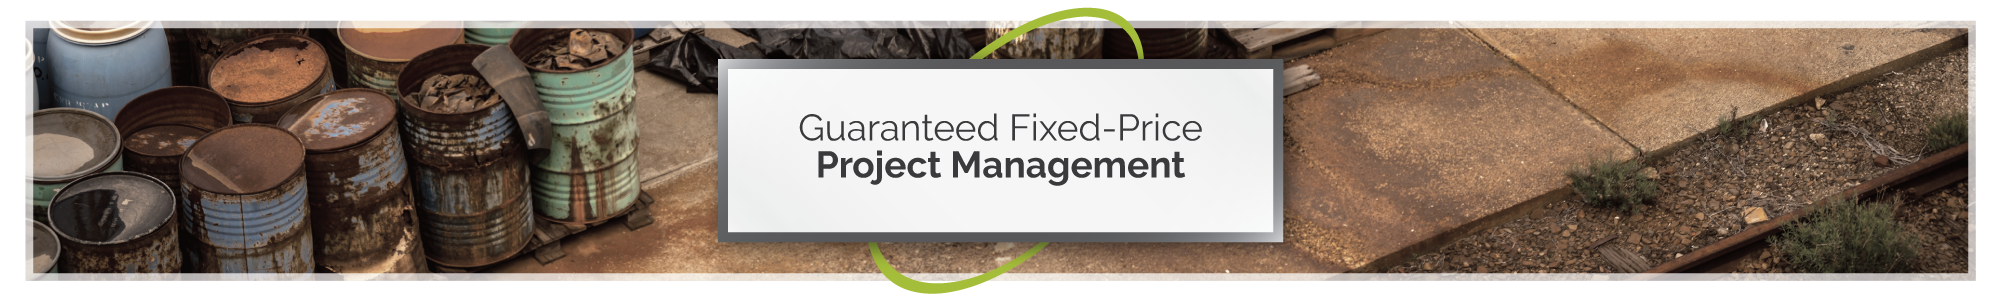 Fixed-Price-Project-Management